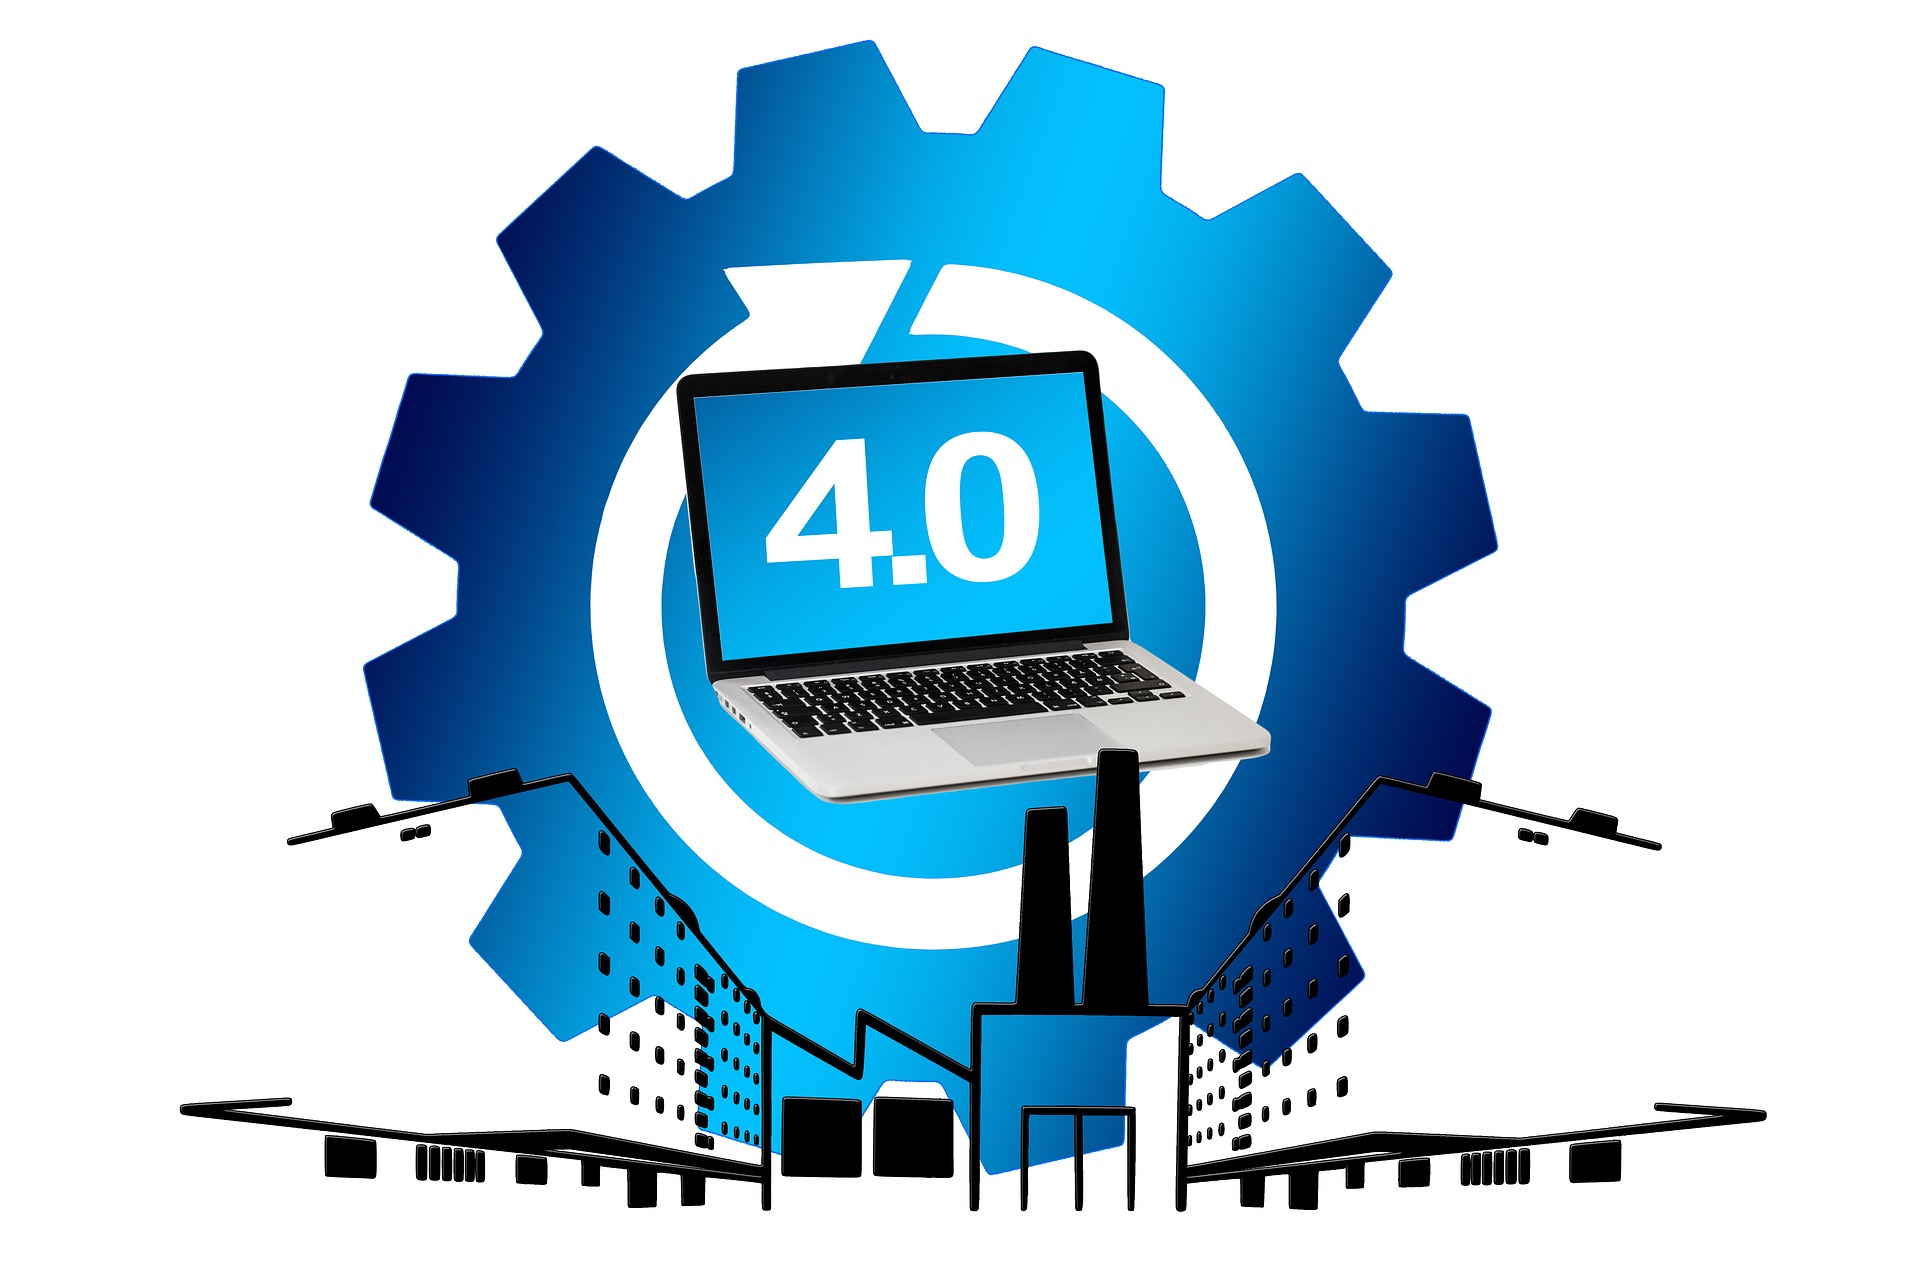 Industry 4.0 - visibility, connectivity, and progress